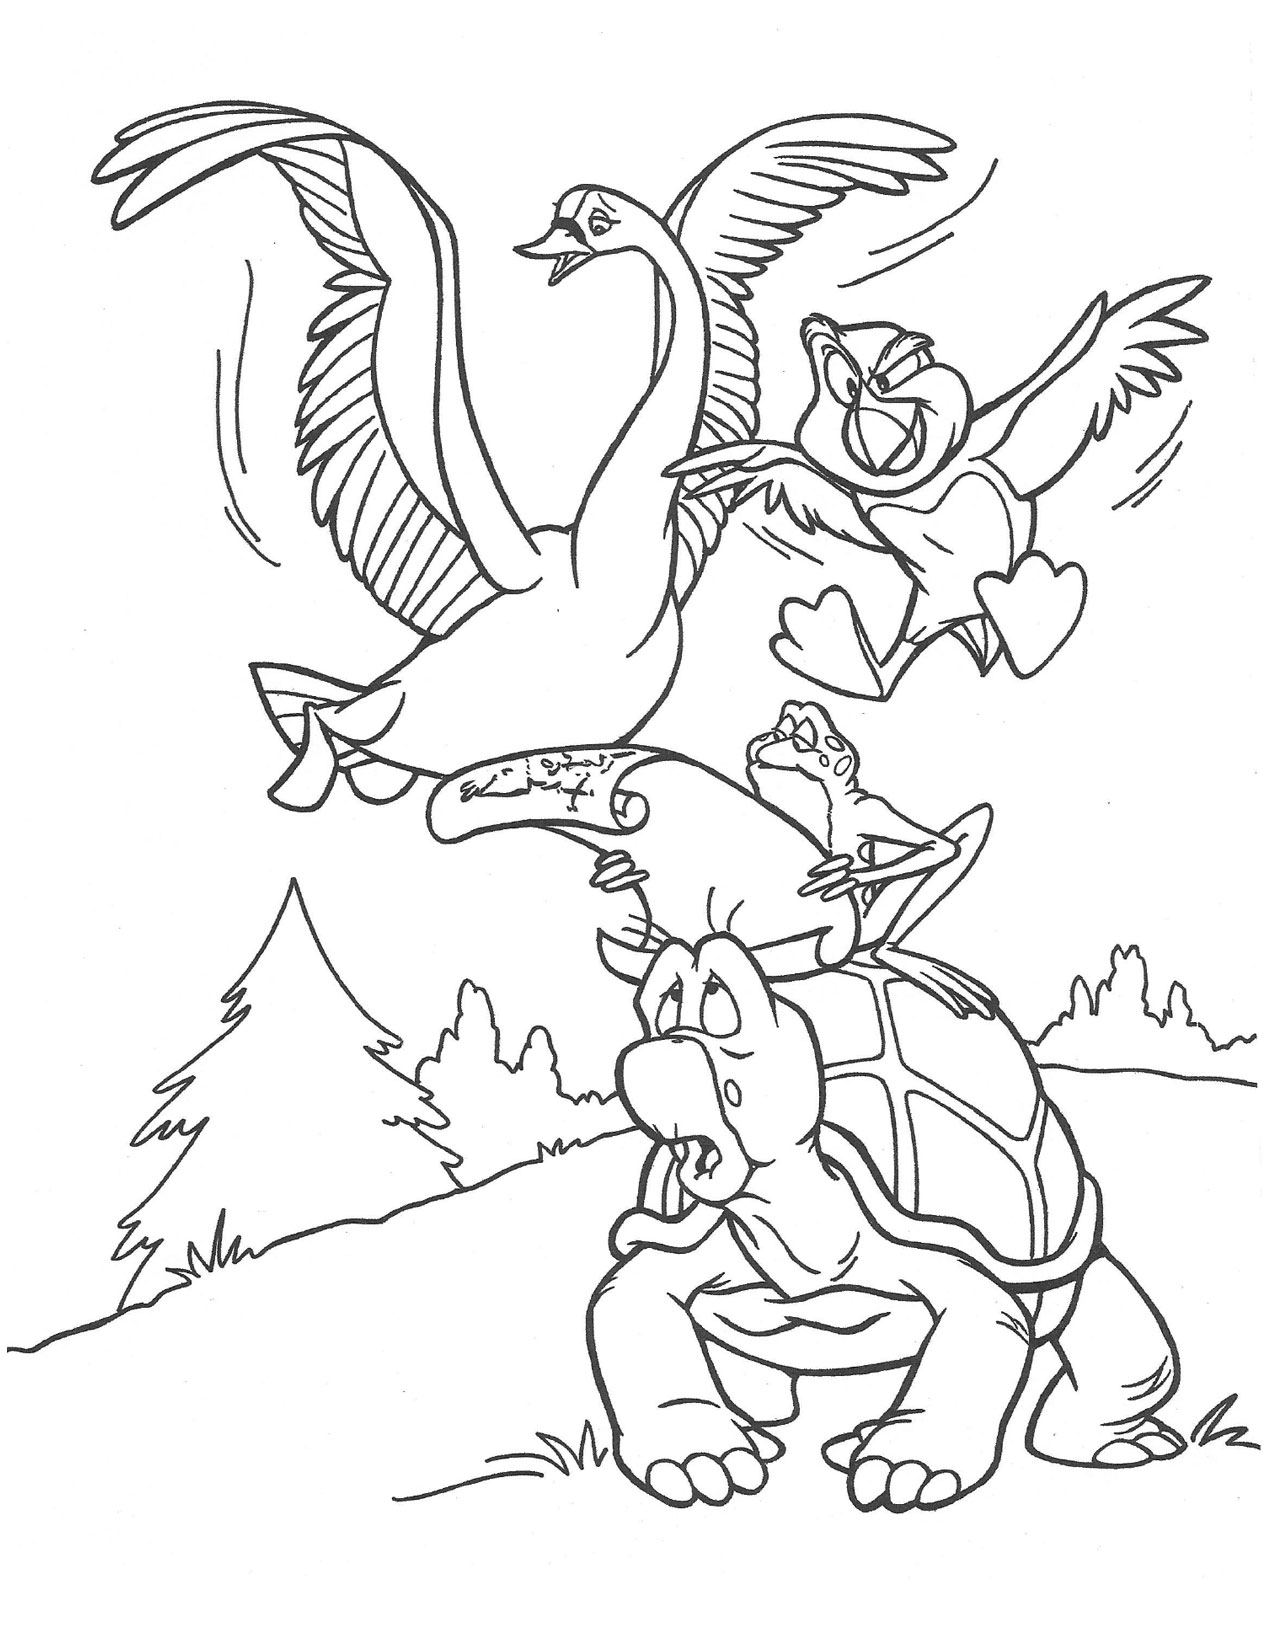 Swan Princess Odette Jean-Bob and puffin coloring page